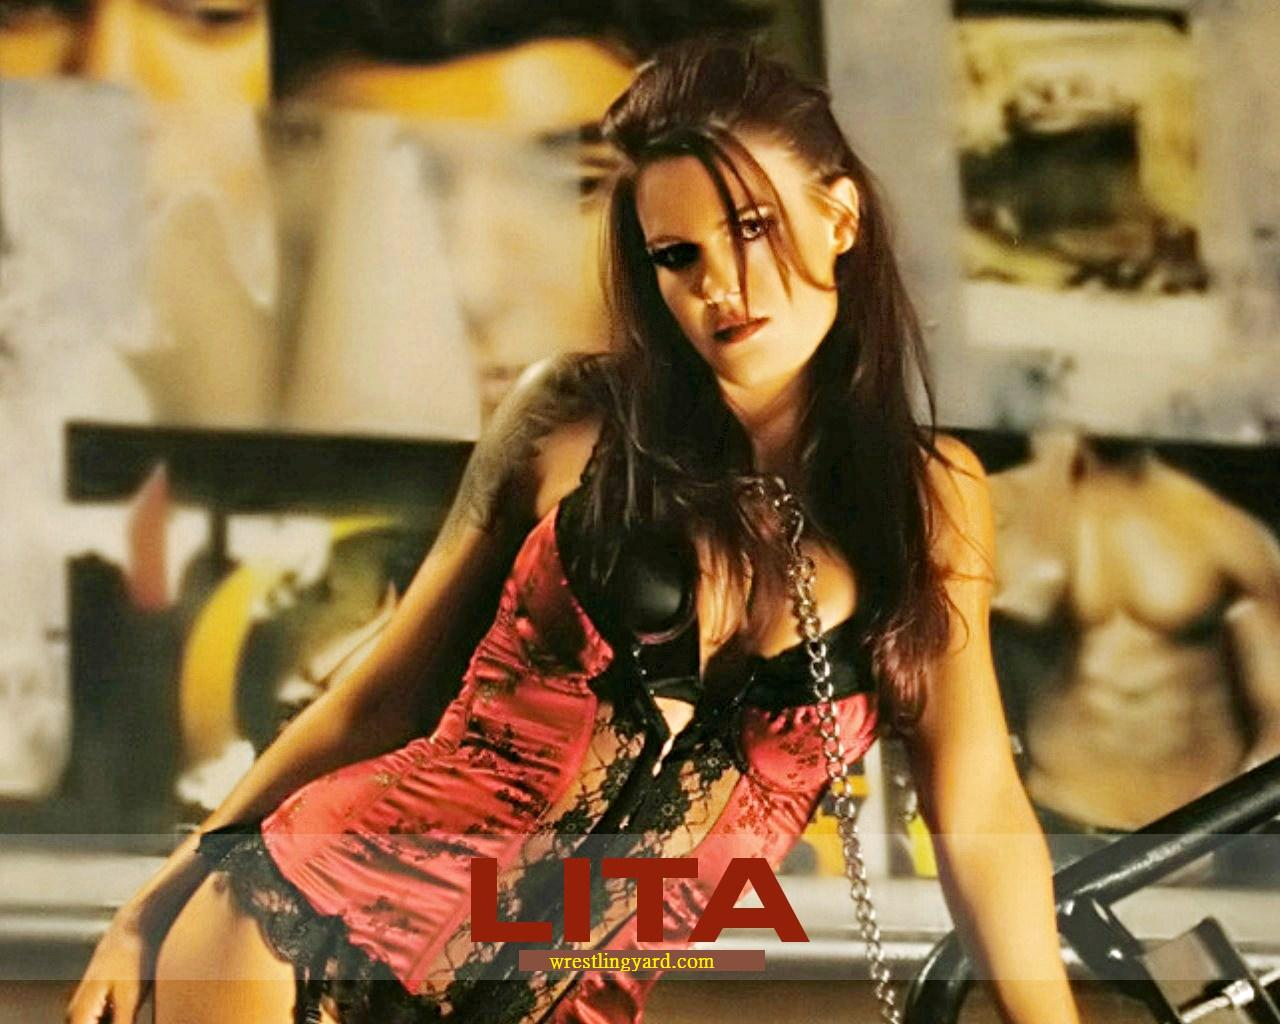 Lita Hot Wallpaper